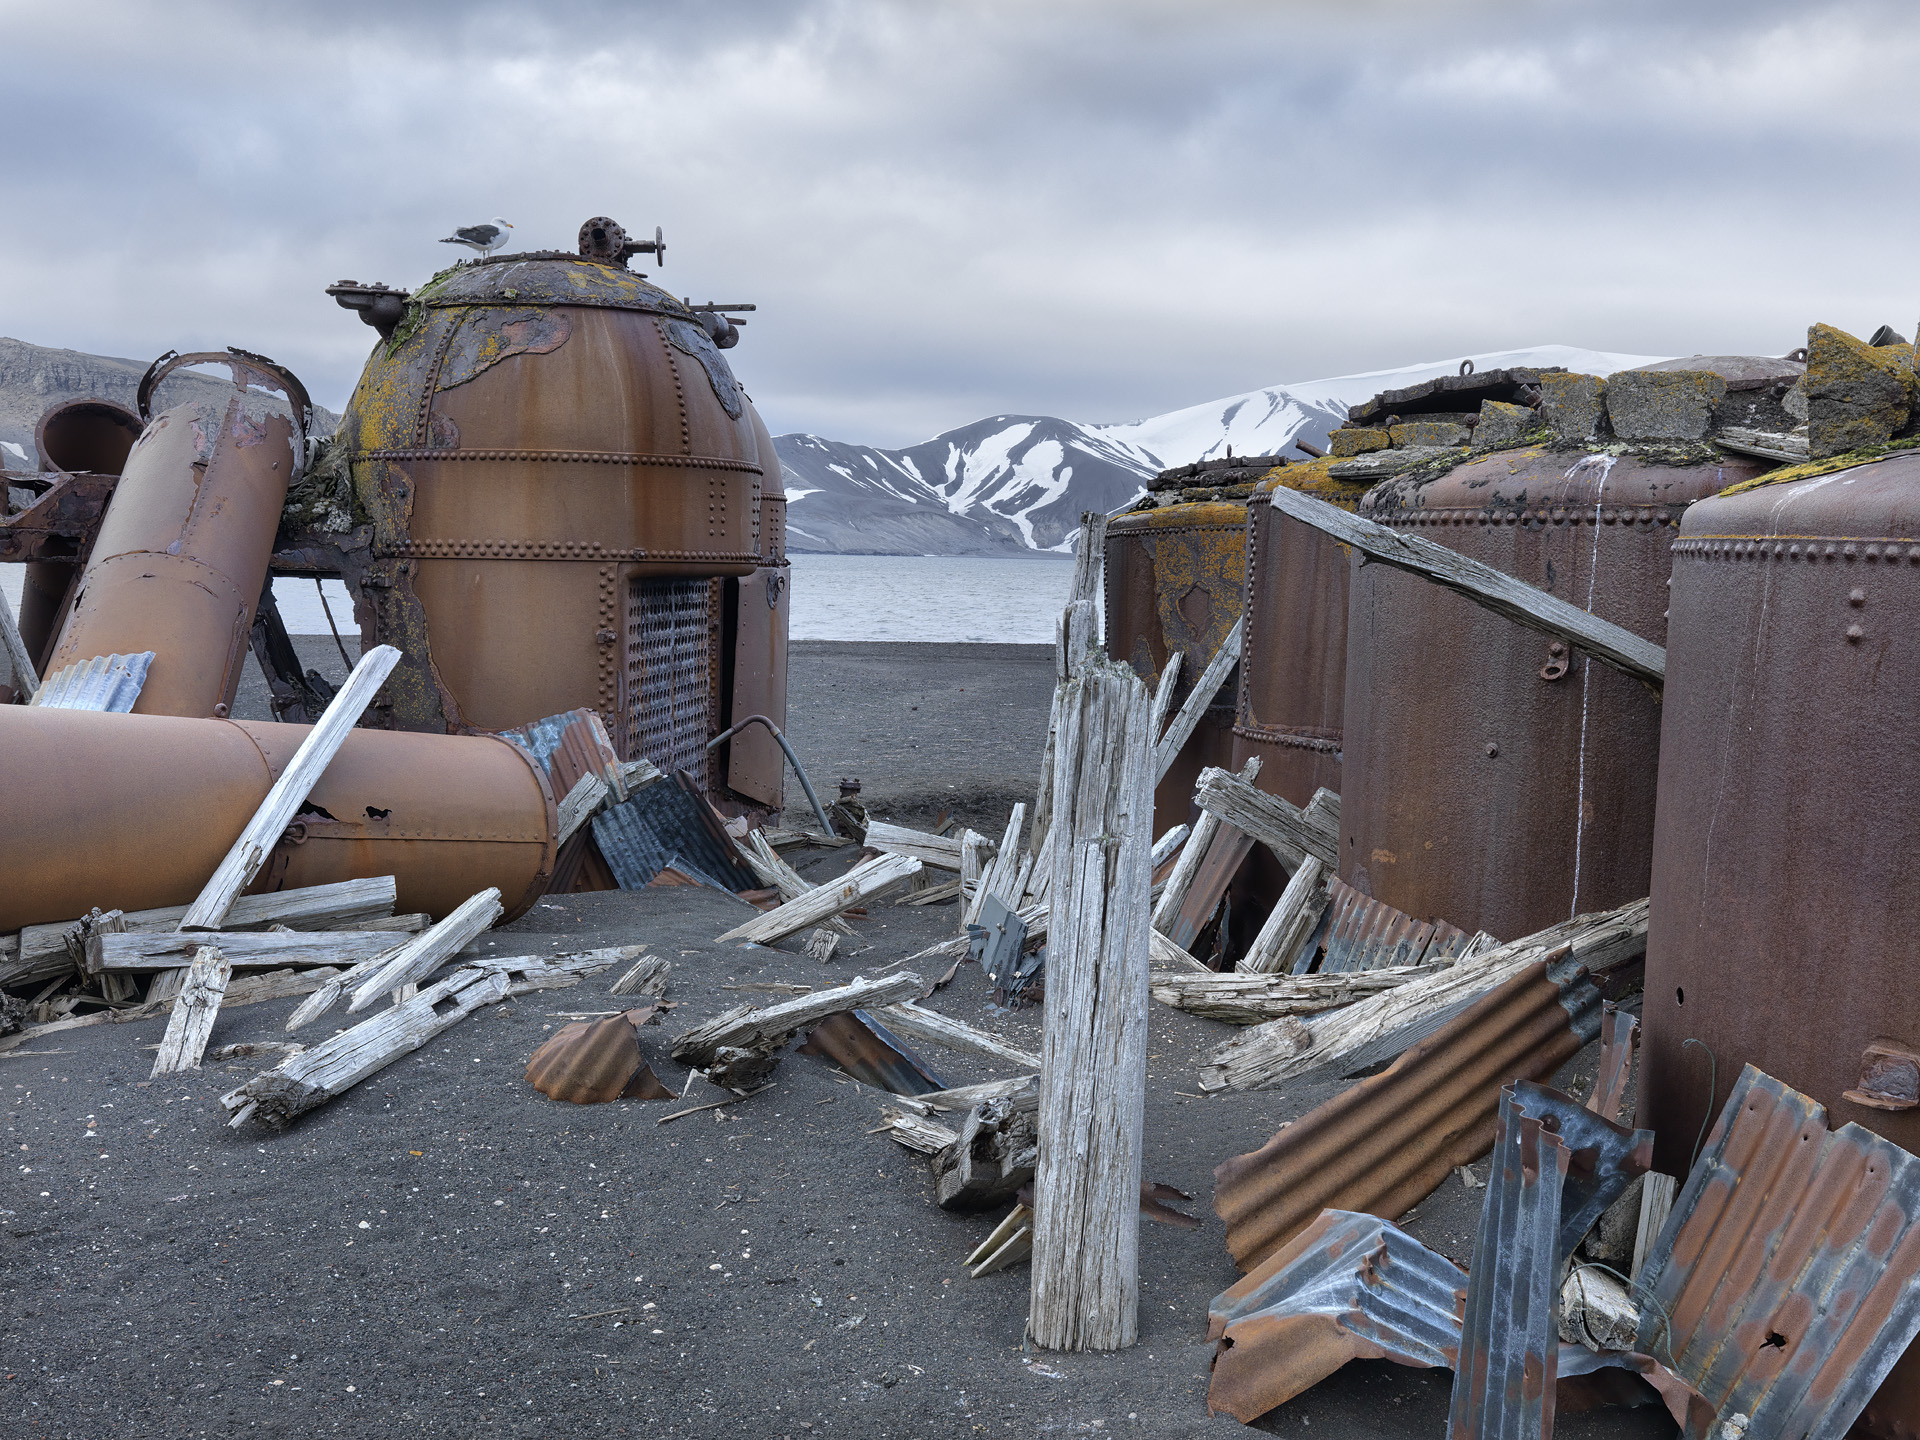 Boilers from The Whaling Industry, Deception Island, Antarctica 2016